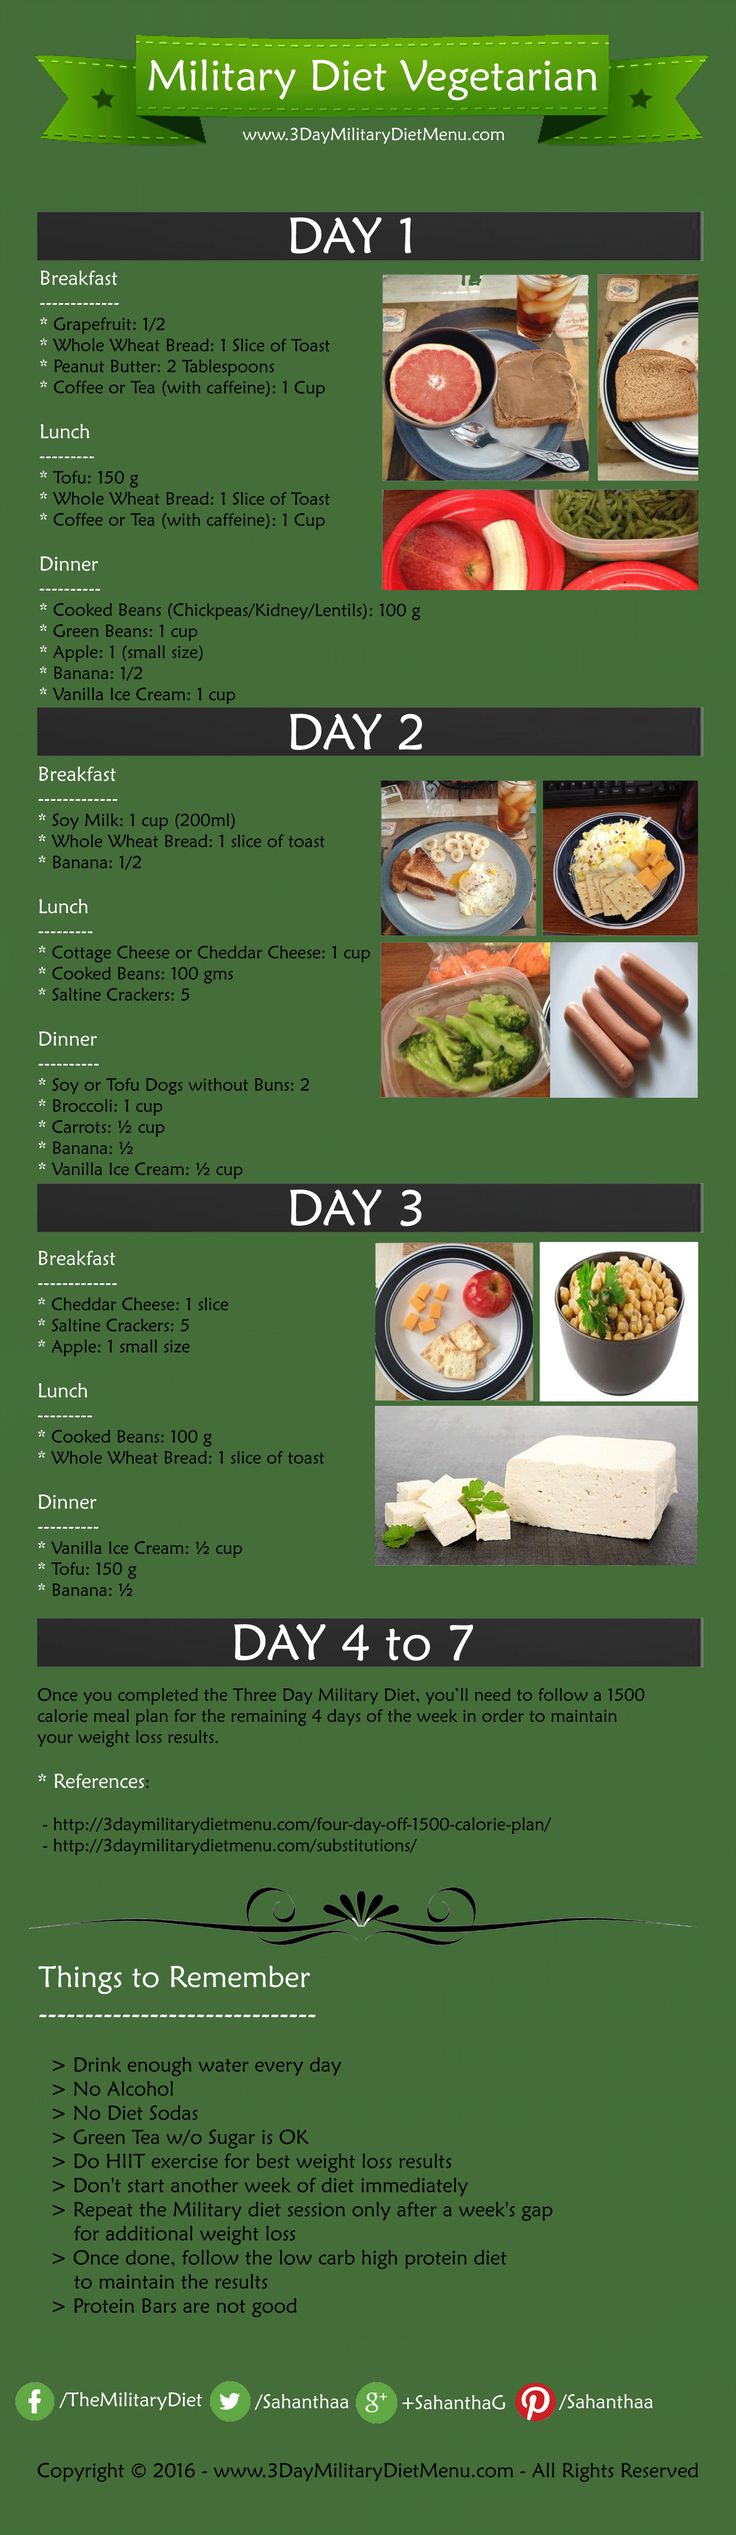 Military Diet Vegetarian Version: Follow this 3 day military diet vegan meal plan for weight loss.